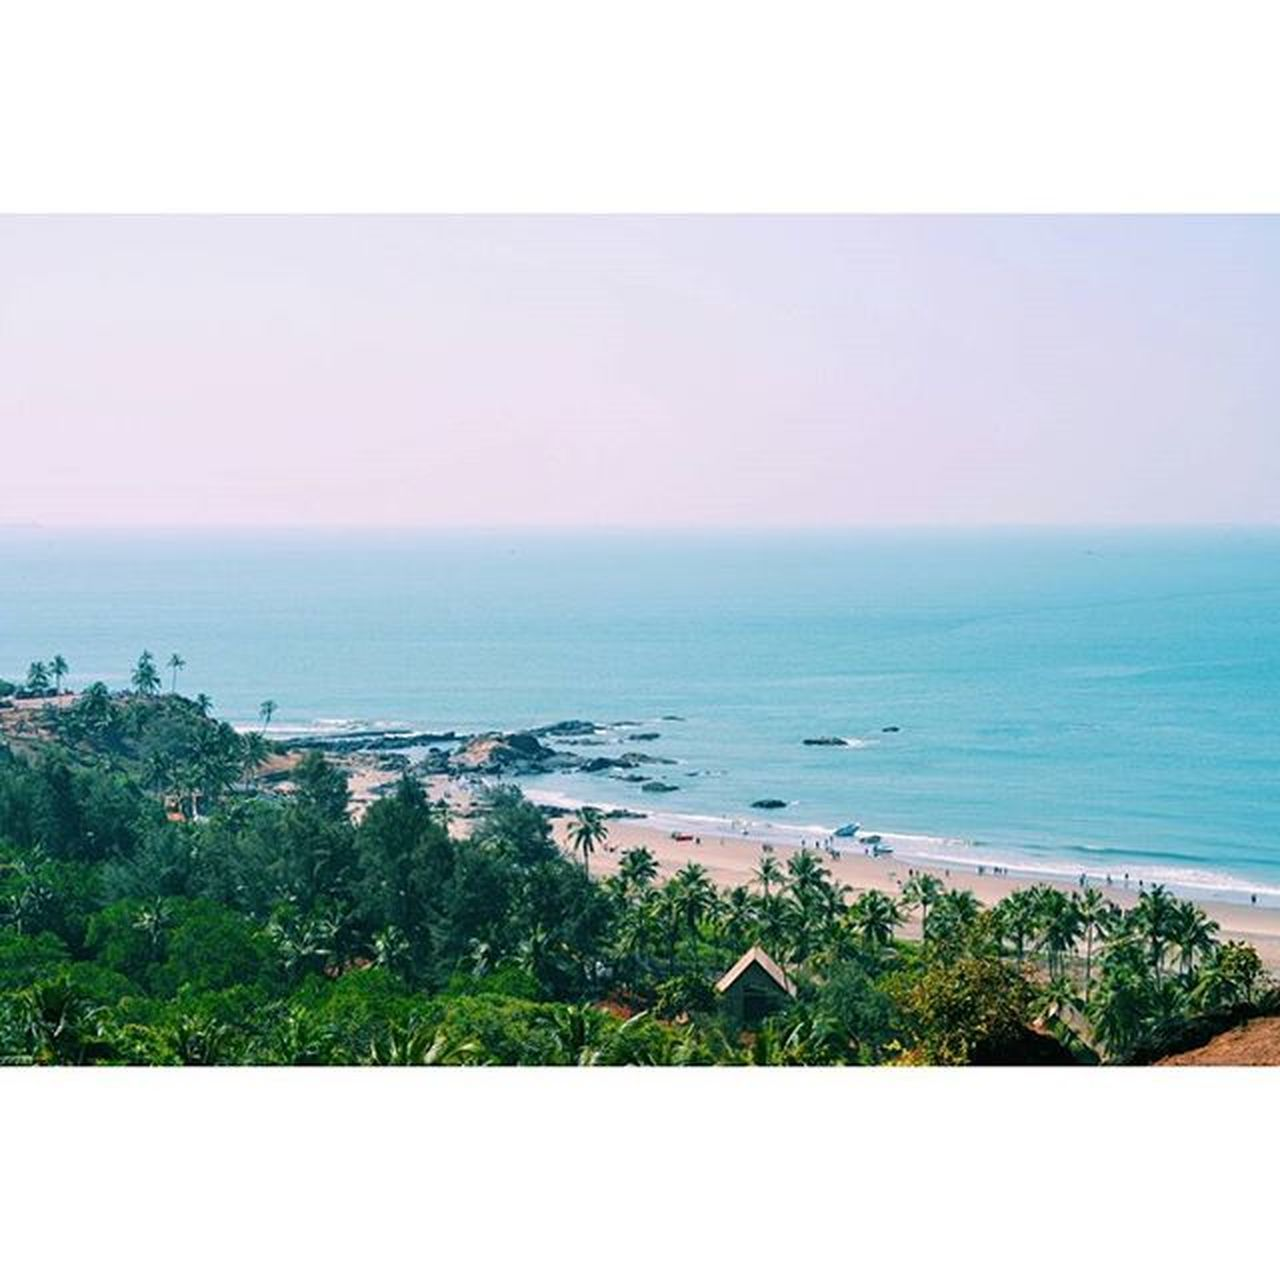 G ⊙ A IndiaJourney Goa Vagator Beach India Northgoa Chaporafort Fort Topview Vscoindia VSCO Vscocam Vscoexplore Vscotravel Explore Travel